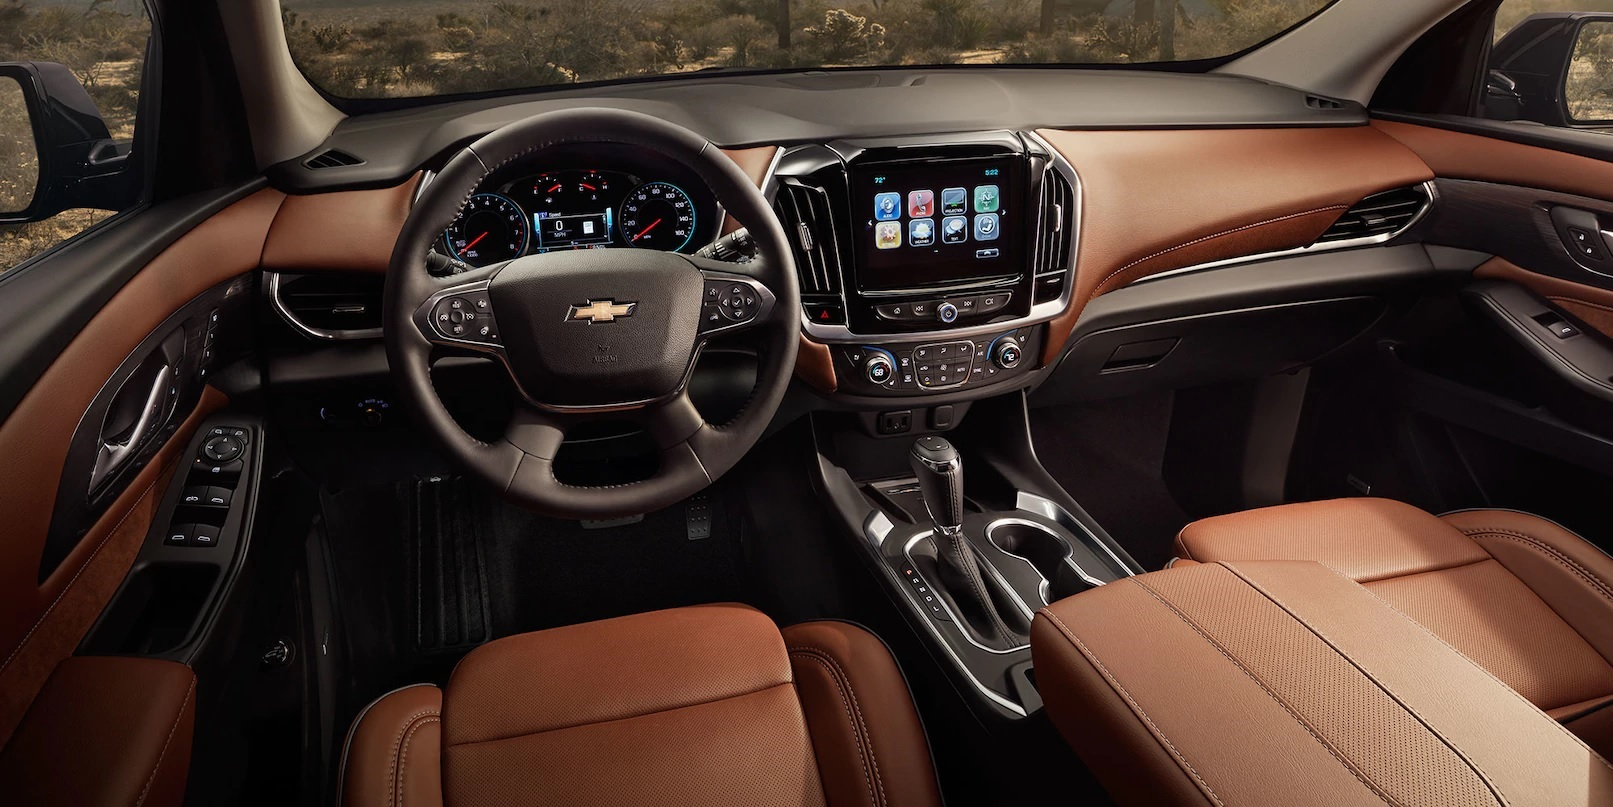 Interior of the 2018 Chevrolet Traverse